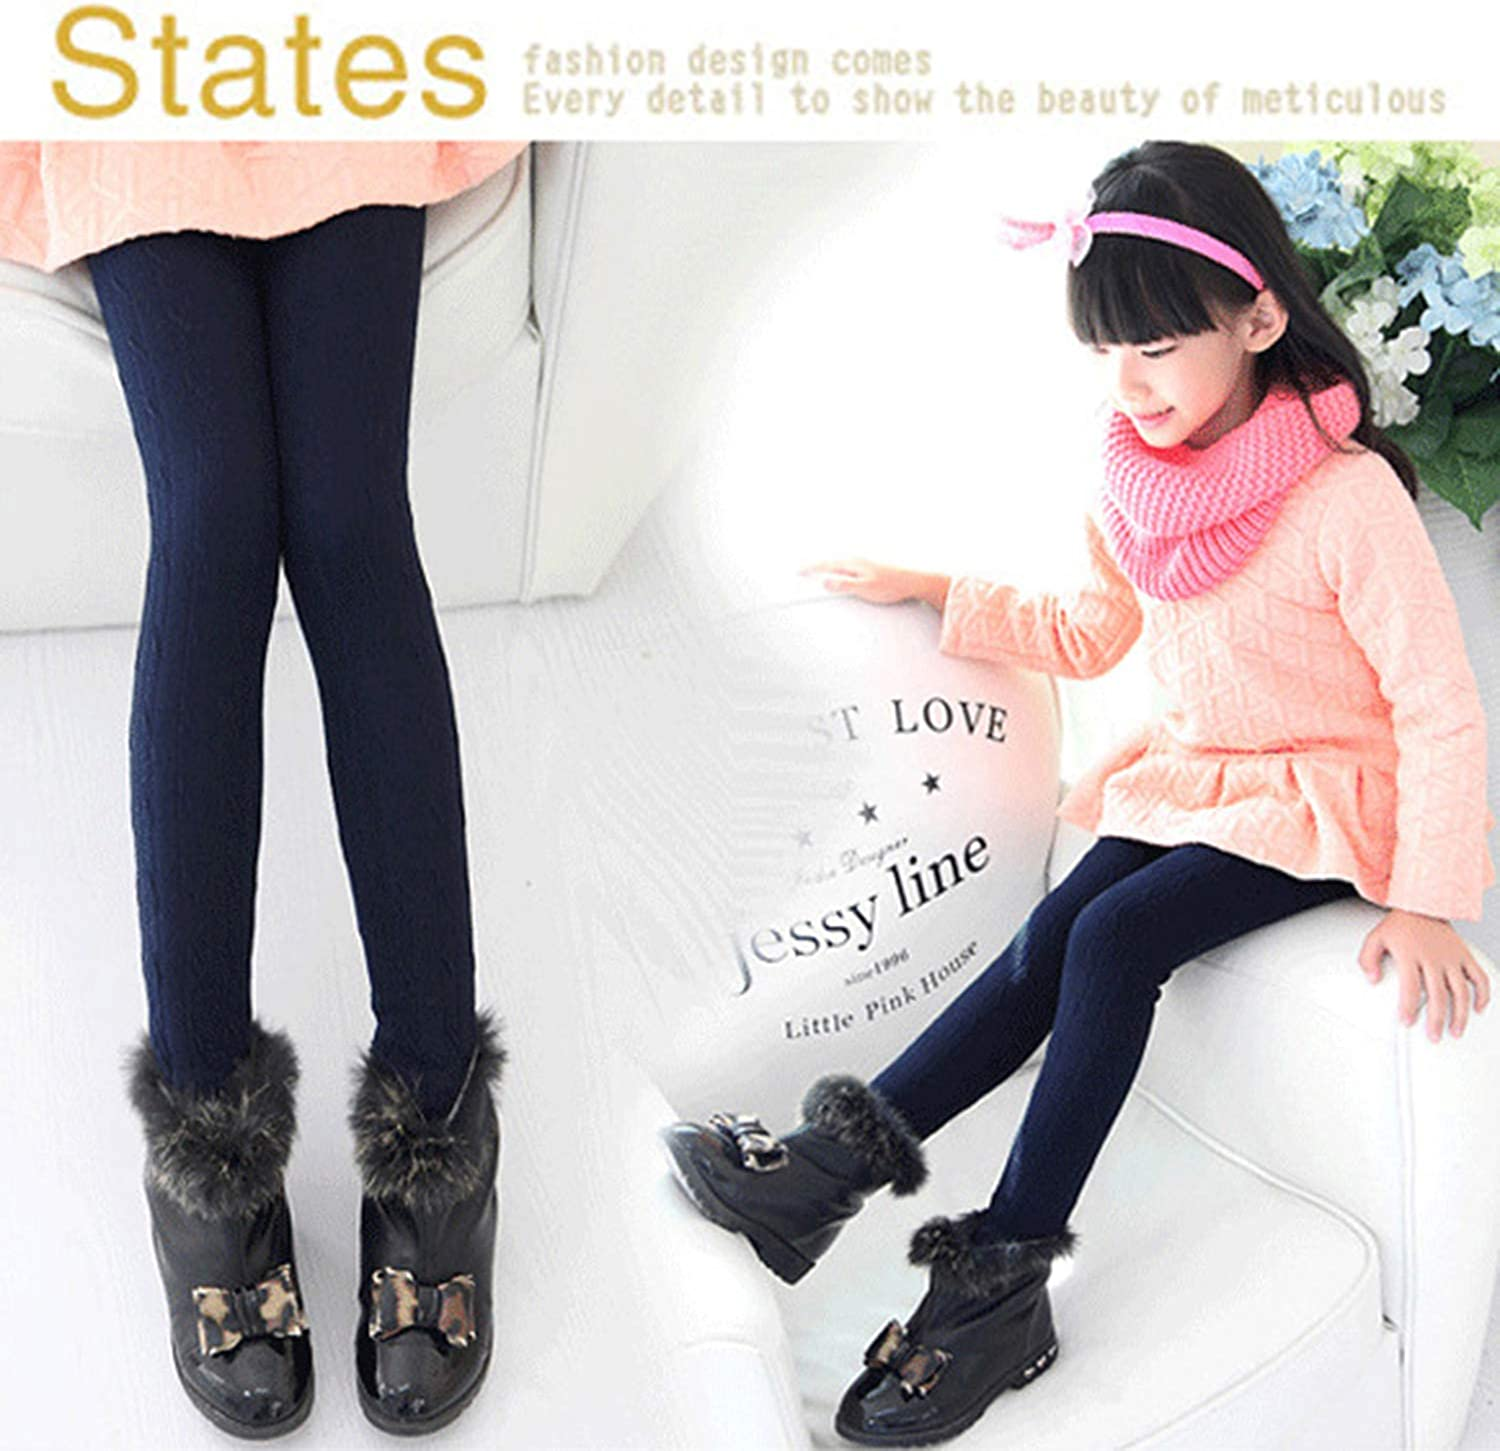 Blue and Black Girls Velvet/Leggings Tights Warm Thick Lined Stretch Cotton/Fleece Knitted Pants Trousers